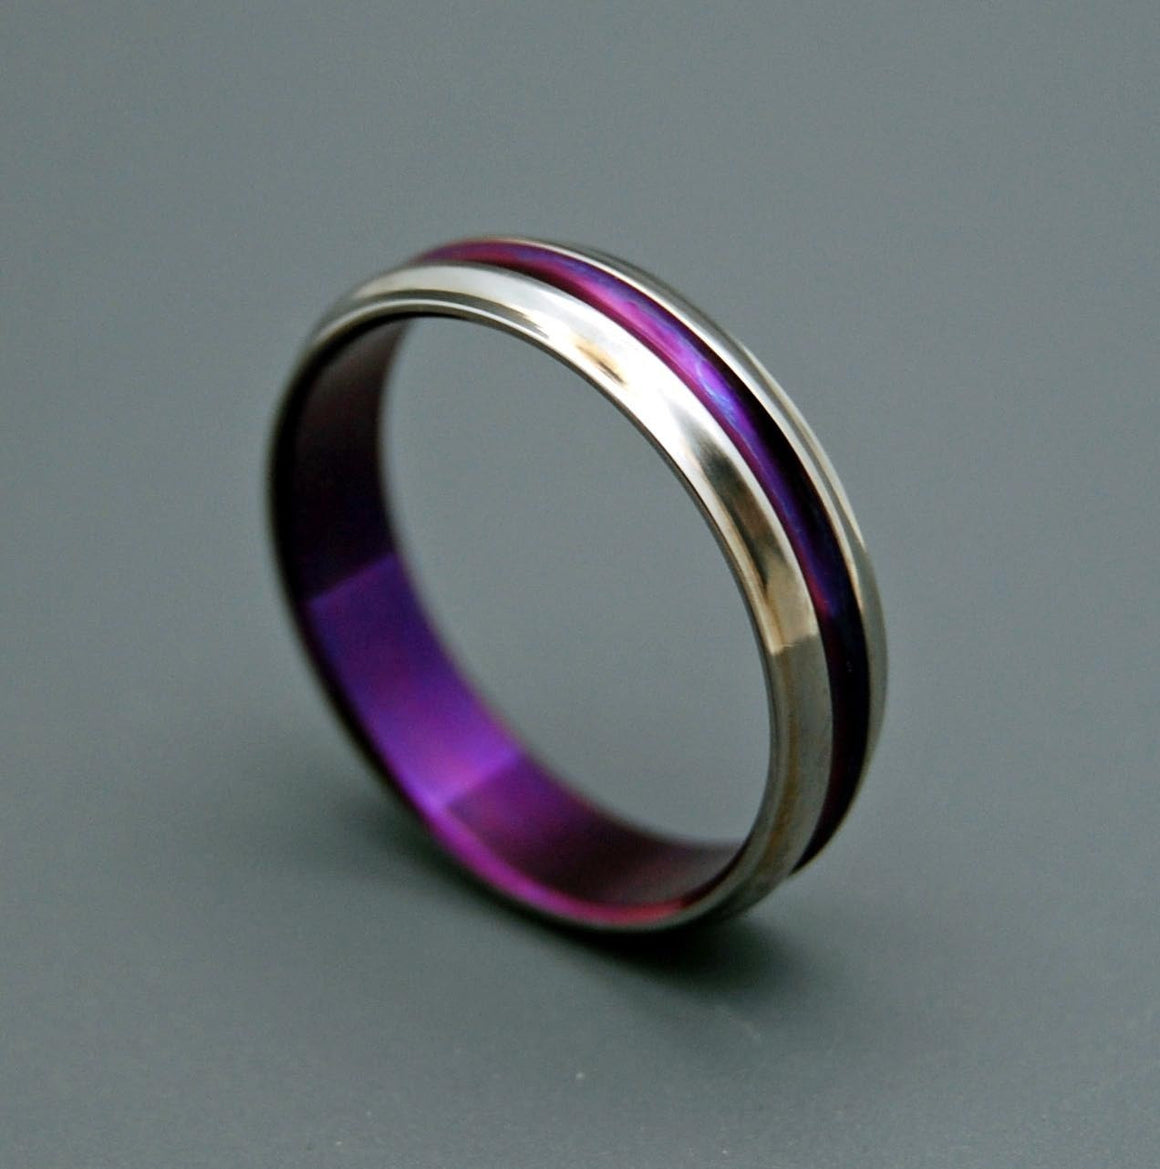 PASSION FOR PURPLE | Purple Handcrafted Titanium Wedding Rings Custom Rings for Women - Minter and Richter Designs